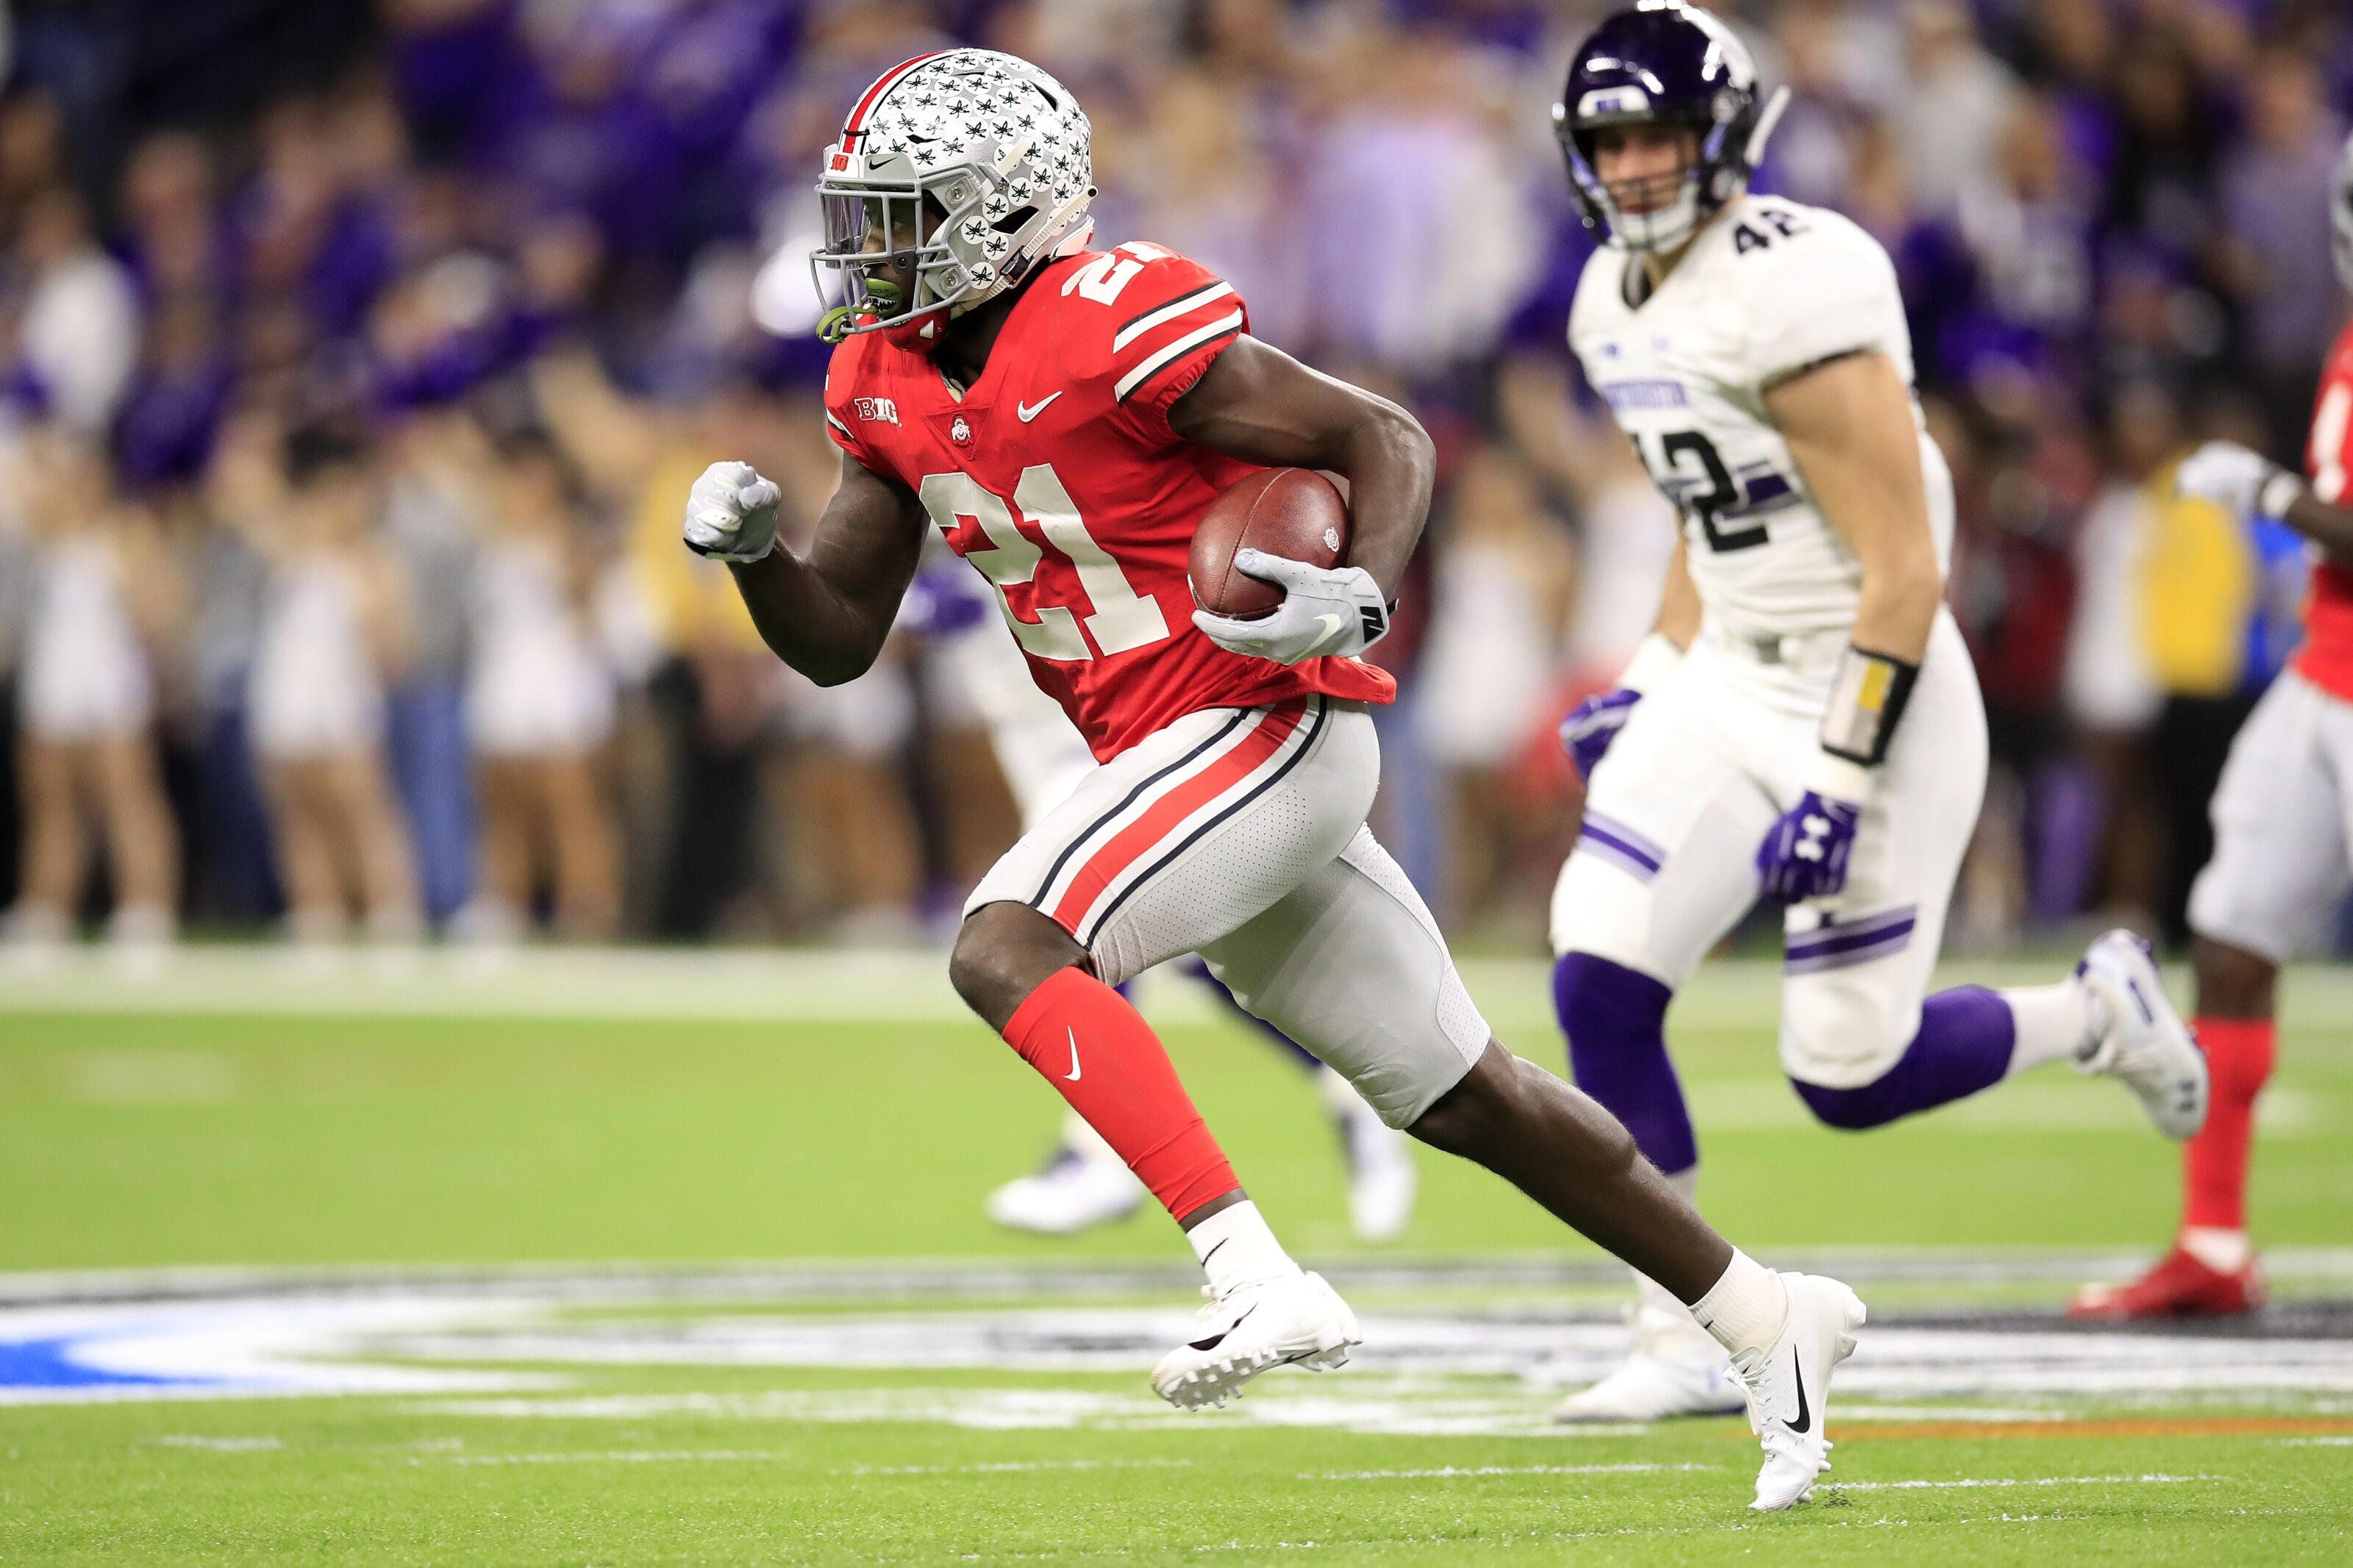 Colts take Parris Campbell with 59th pick